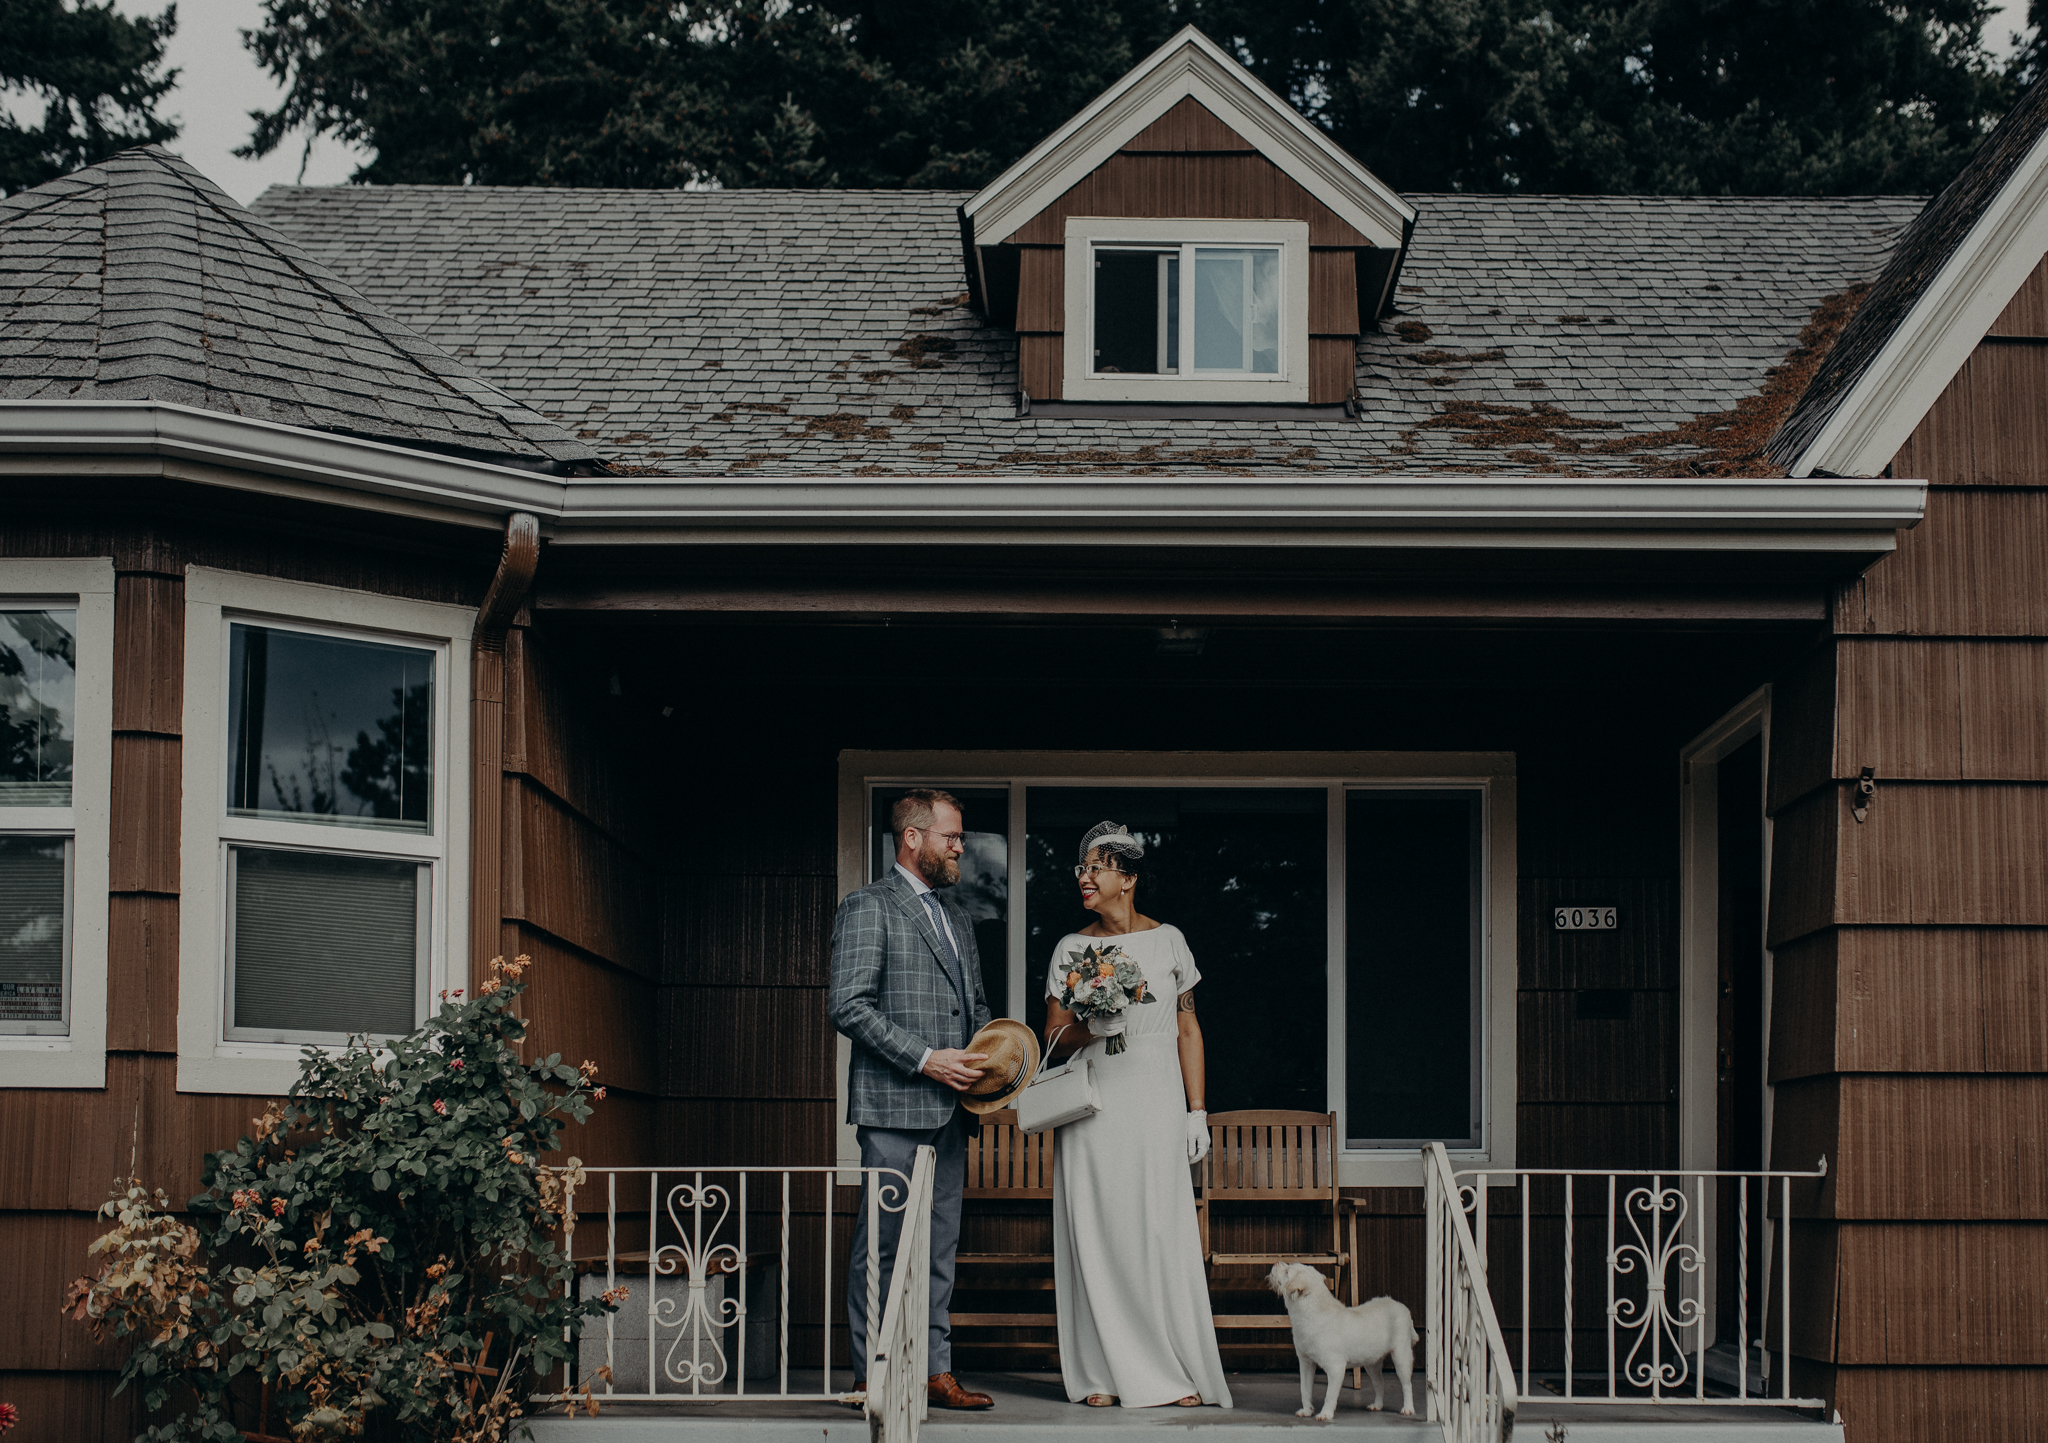 Los Angeles Wedding Photographer - Portland Elopement Photographer - IsaiahAndTaylor.com-058.jpg